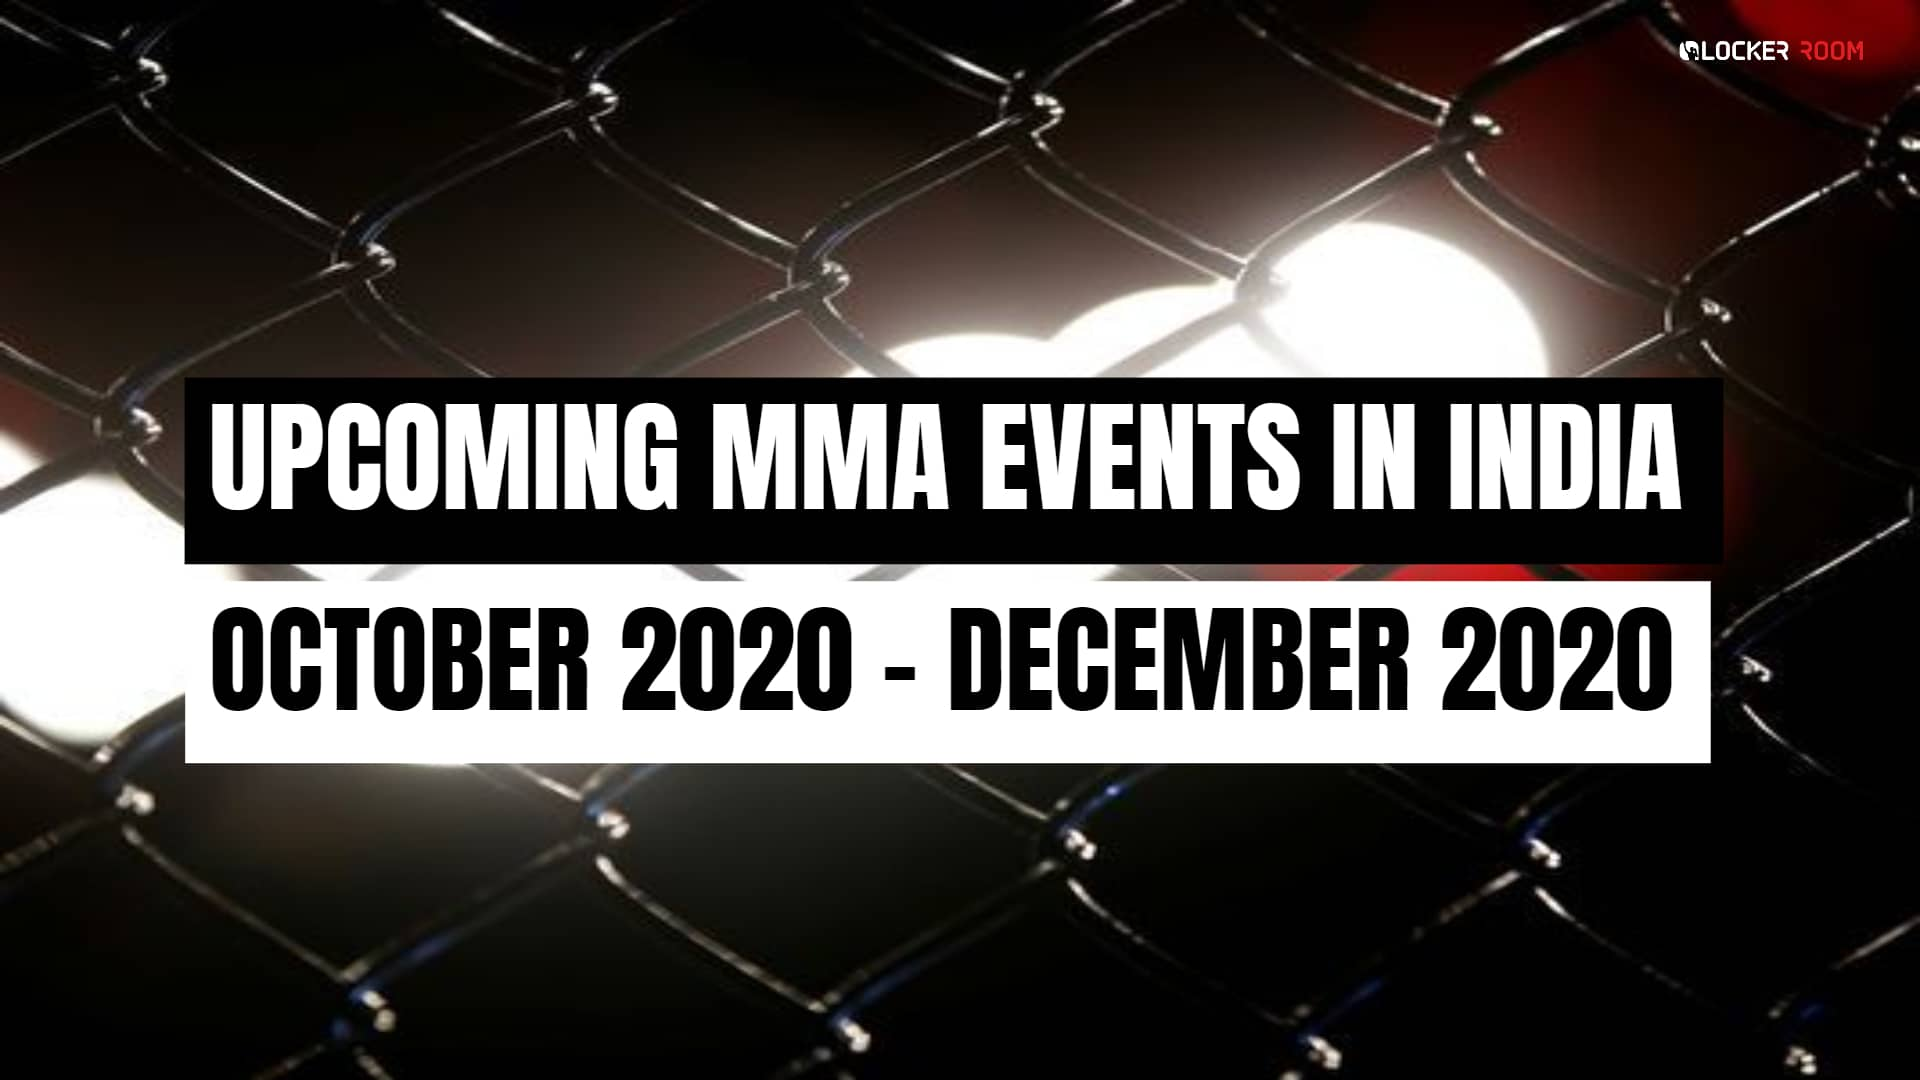 Upcoming-MMA-Events-in-India-2020-October-December